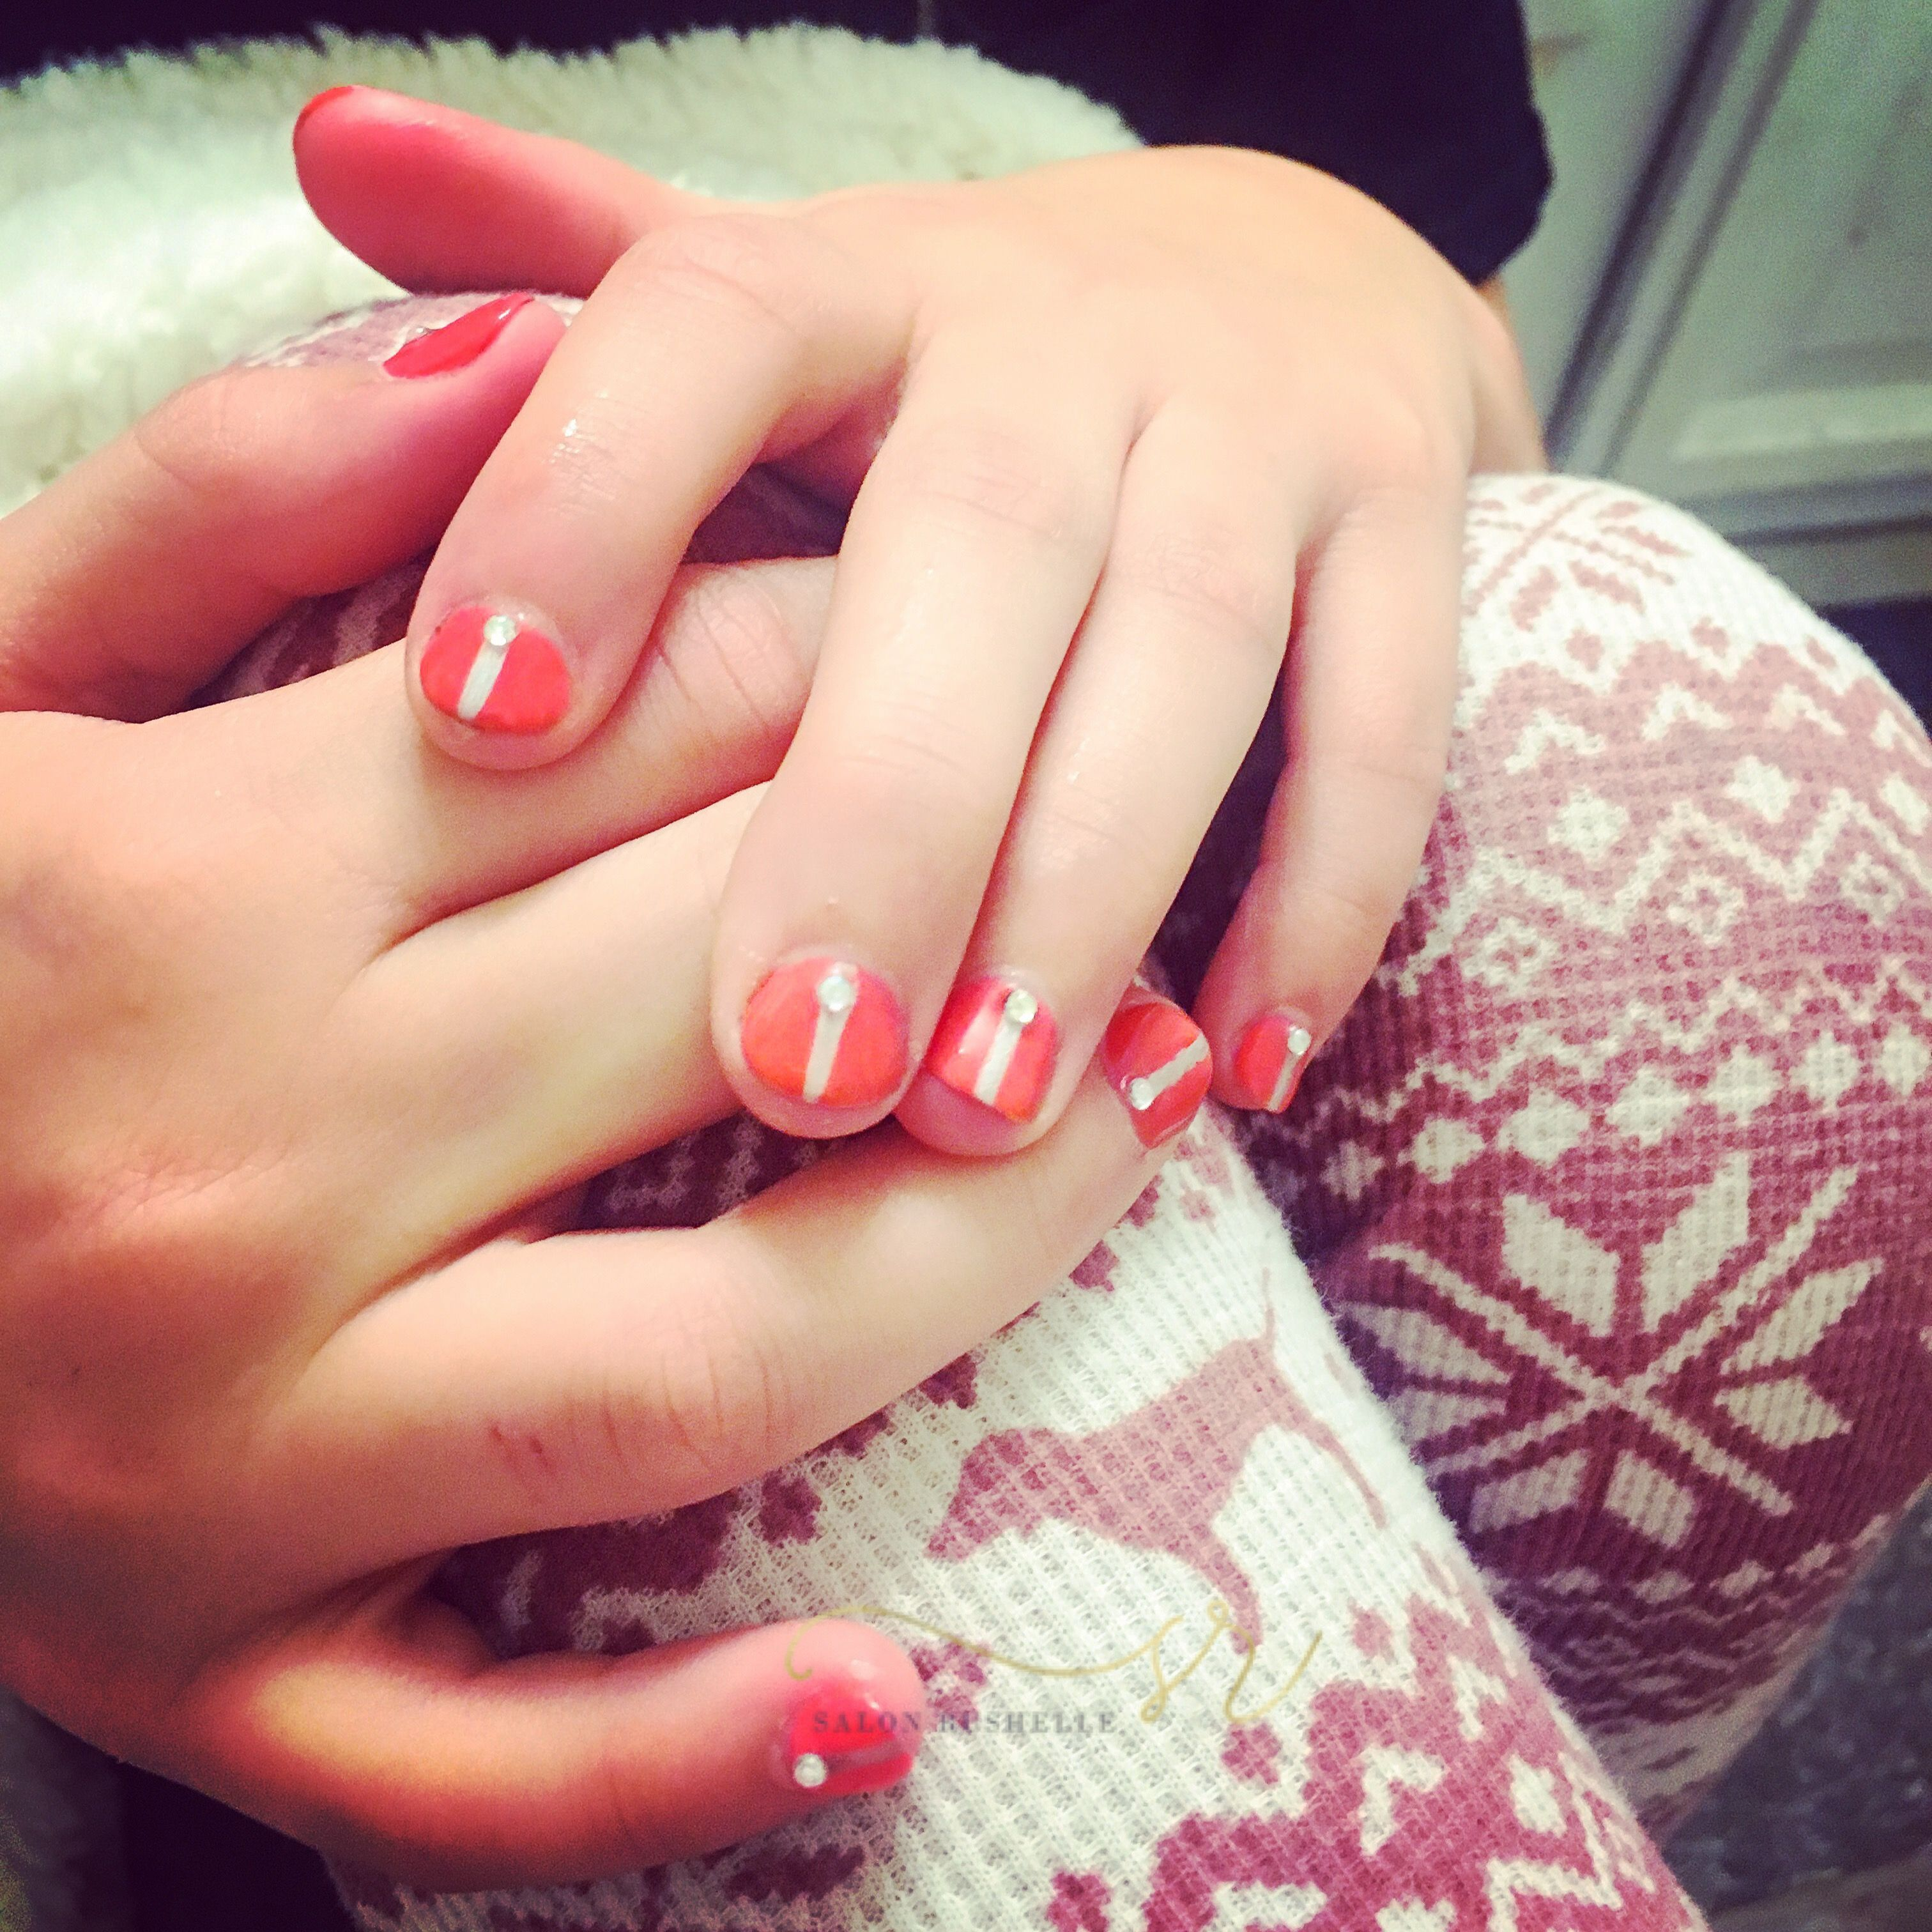 Today I got pampered by my favorite nail girl ever! @nailsbyshosh did a beautiful job on my nails today. After all you're never too young to put a little #bling in your life! Give her a call @ 517.983.8698 and book your manicure now. Mention me at the time of your appointment and save 10% off your manicure! #salonrushelle #nailswag #brooklynmi #preteenlife #nailsmagazine #nailbyshosh